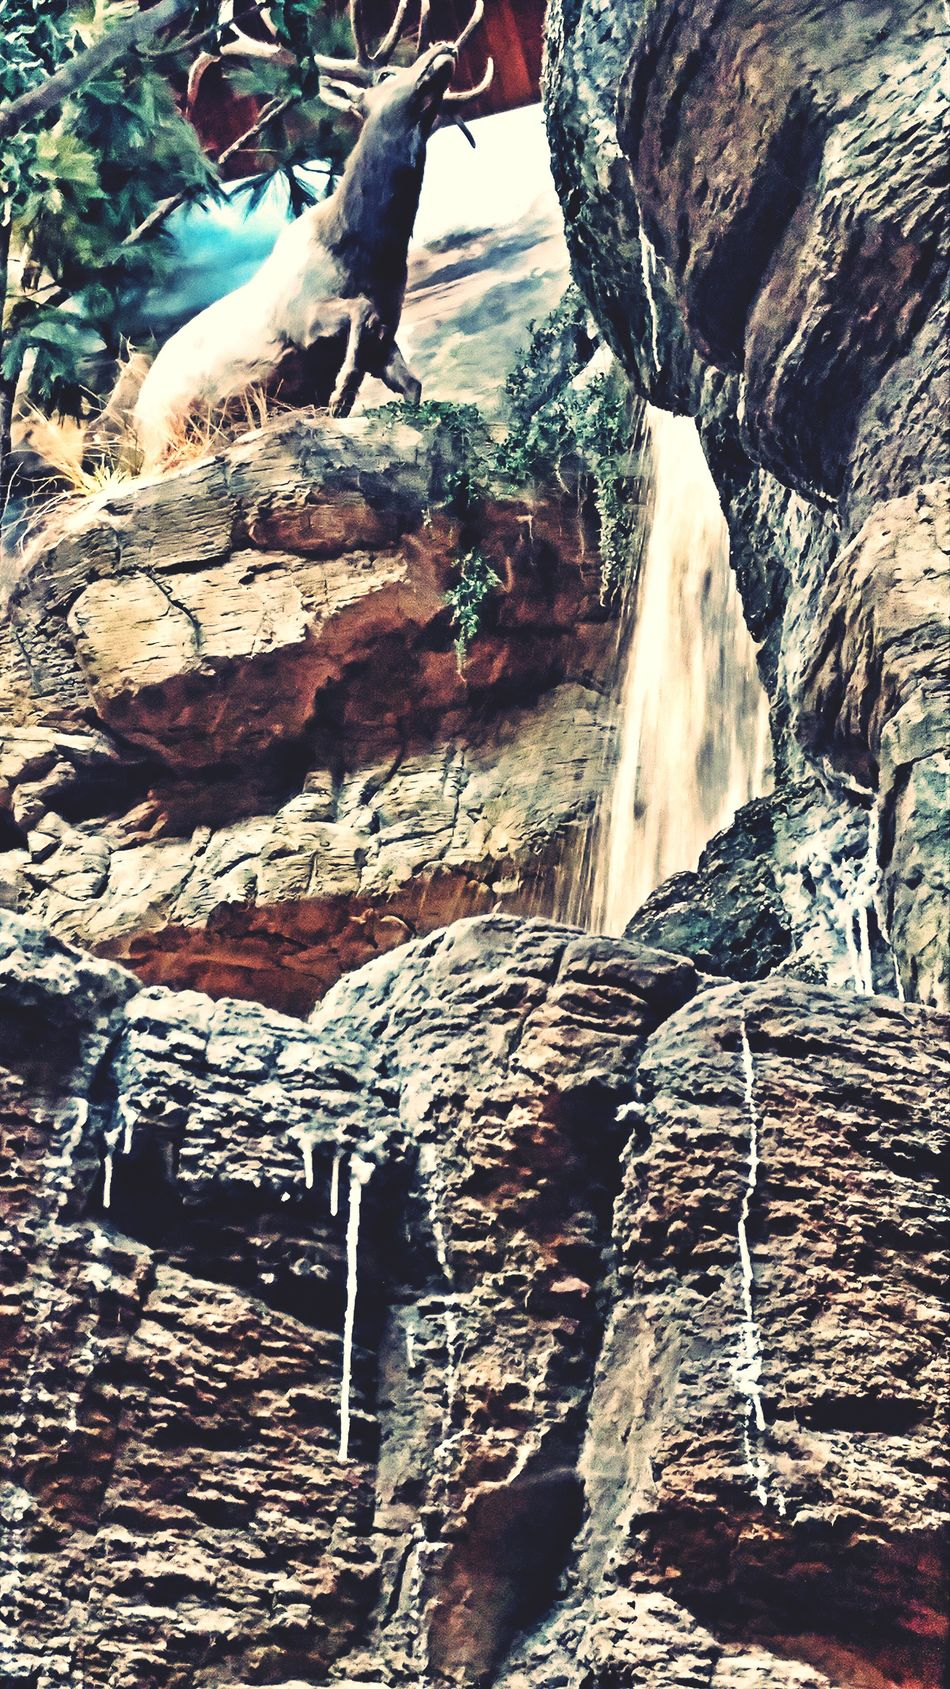 Deer Rock - Object Day Nature Outdoors No People Deer EyeEm Gallery Popular Photos Alleyezonmayphotography Tranquility Waterfall Close-up Nature Mesa Arizona Check This Out